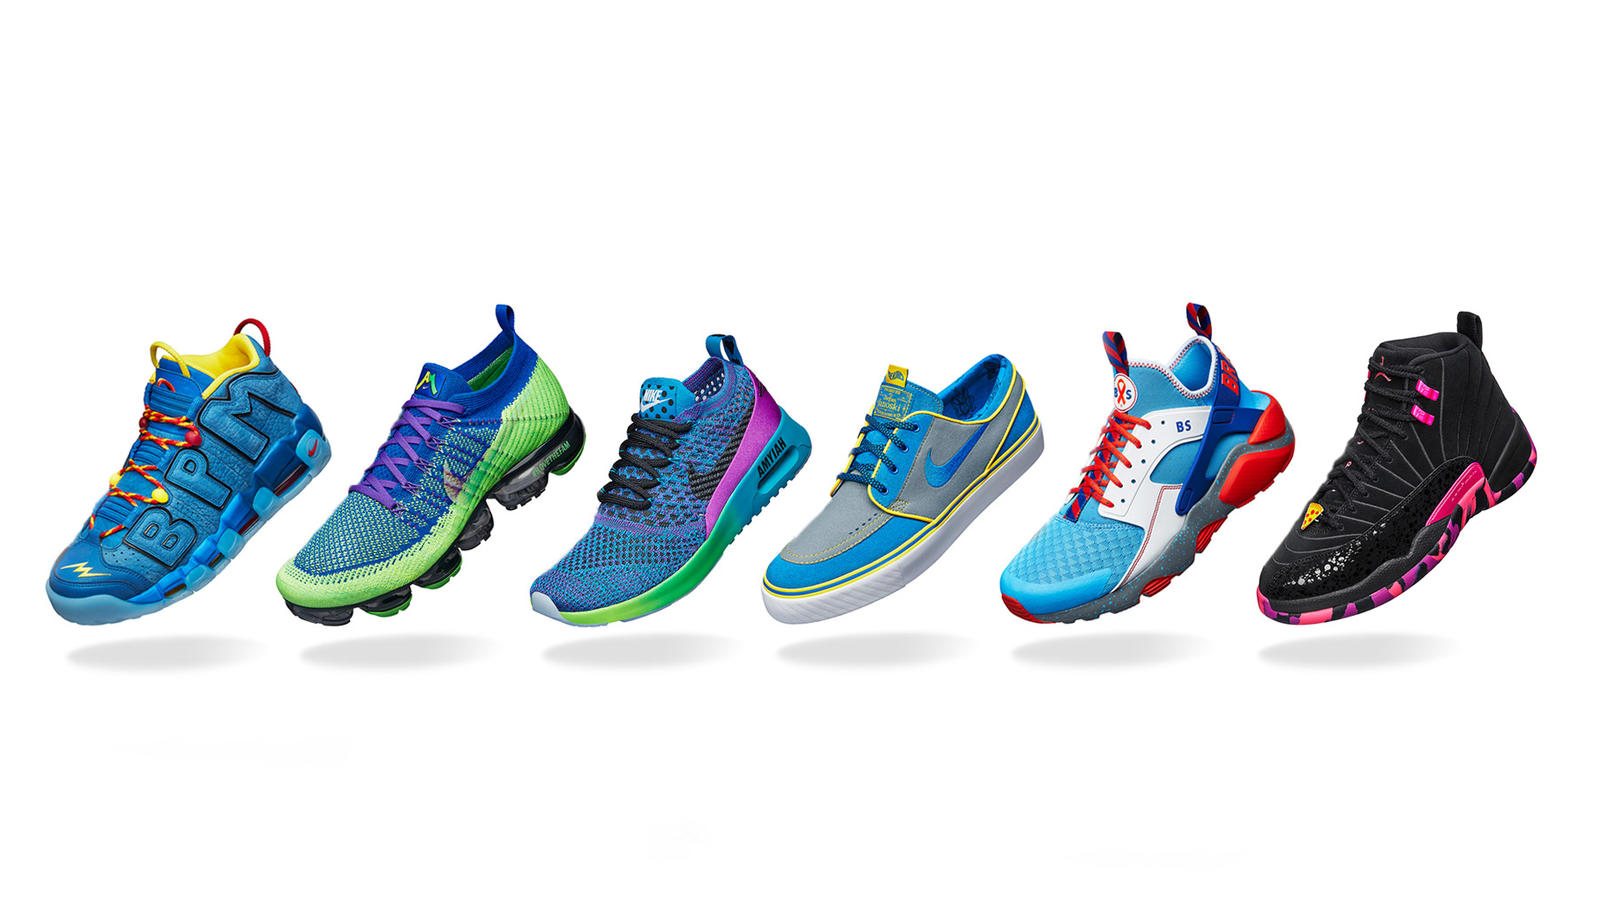 What the Doernbecher Freestyle Program Means to the Sneaker